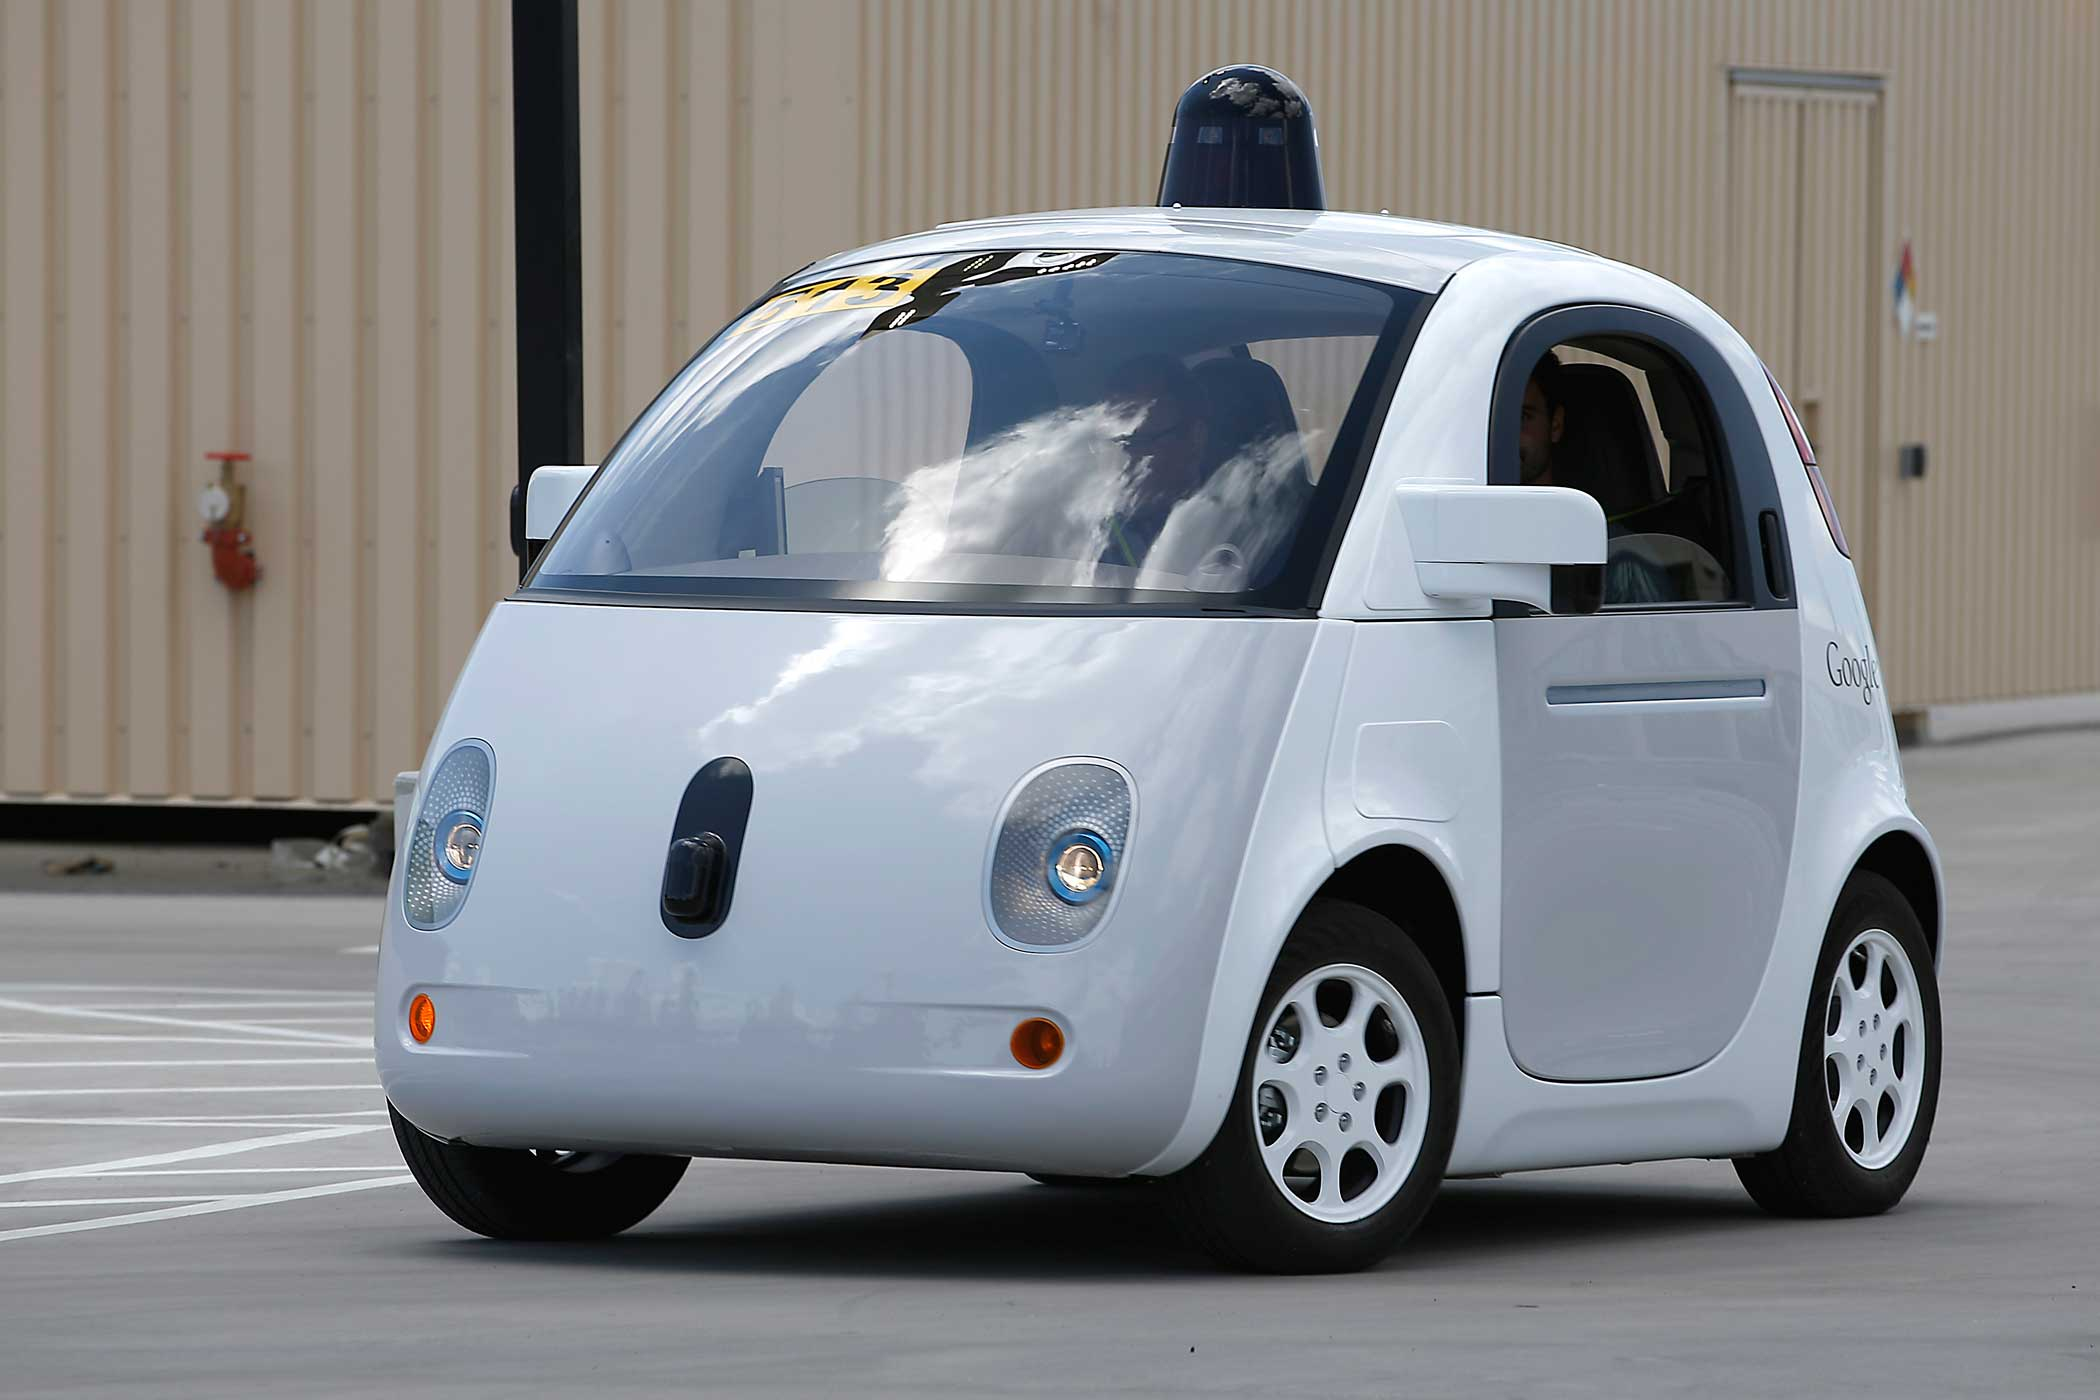 <b>Google X</b>: Google's most ambitious projects, such as its self-driving cars, often begin in this secretive research department